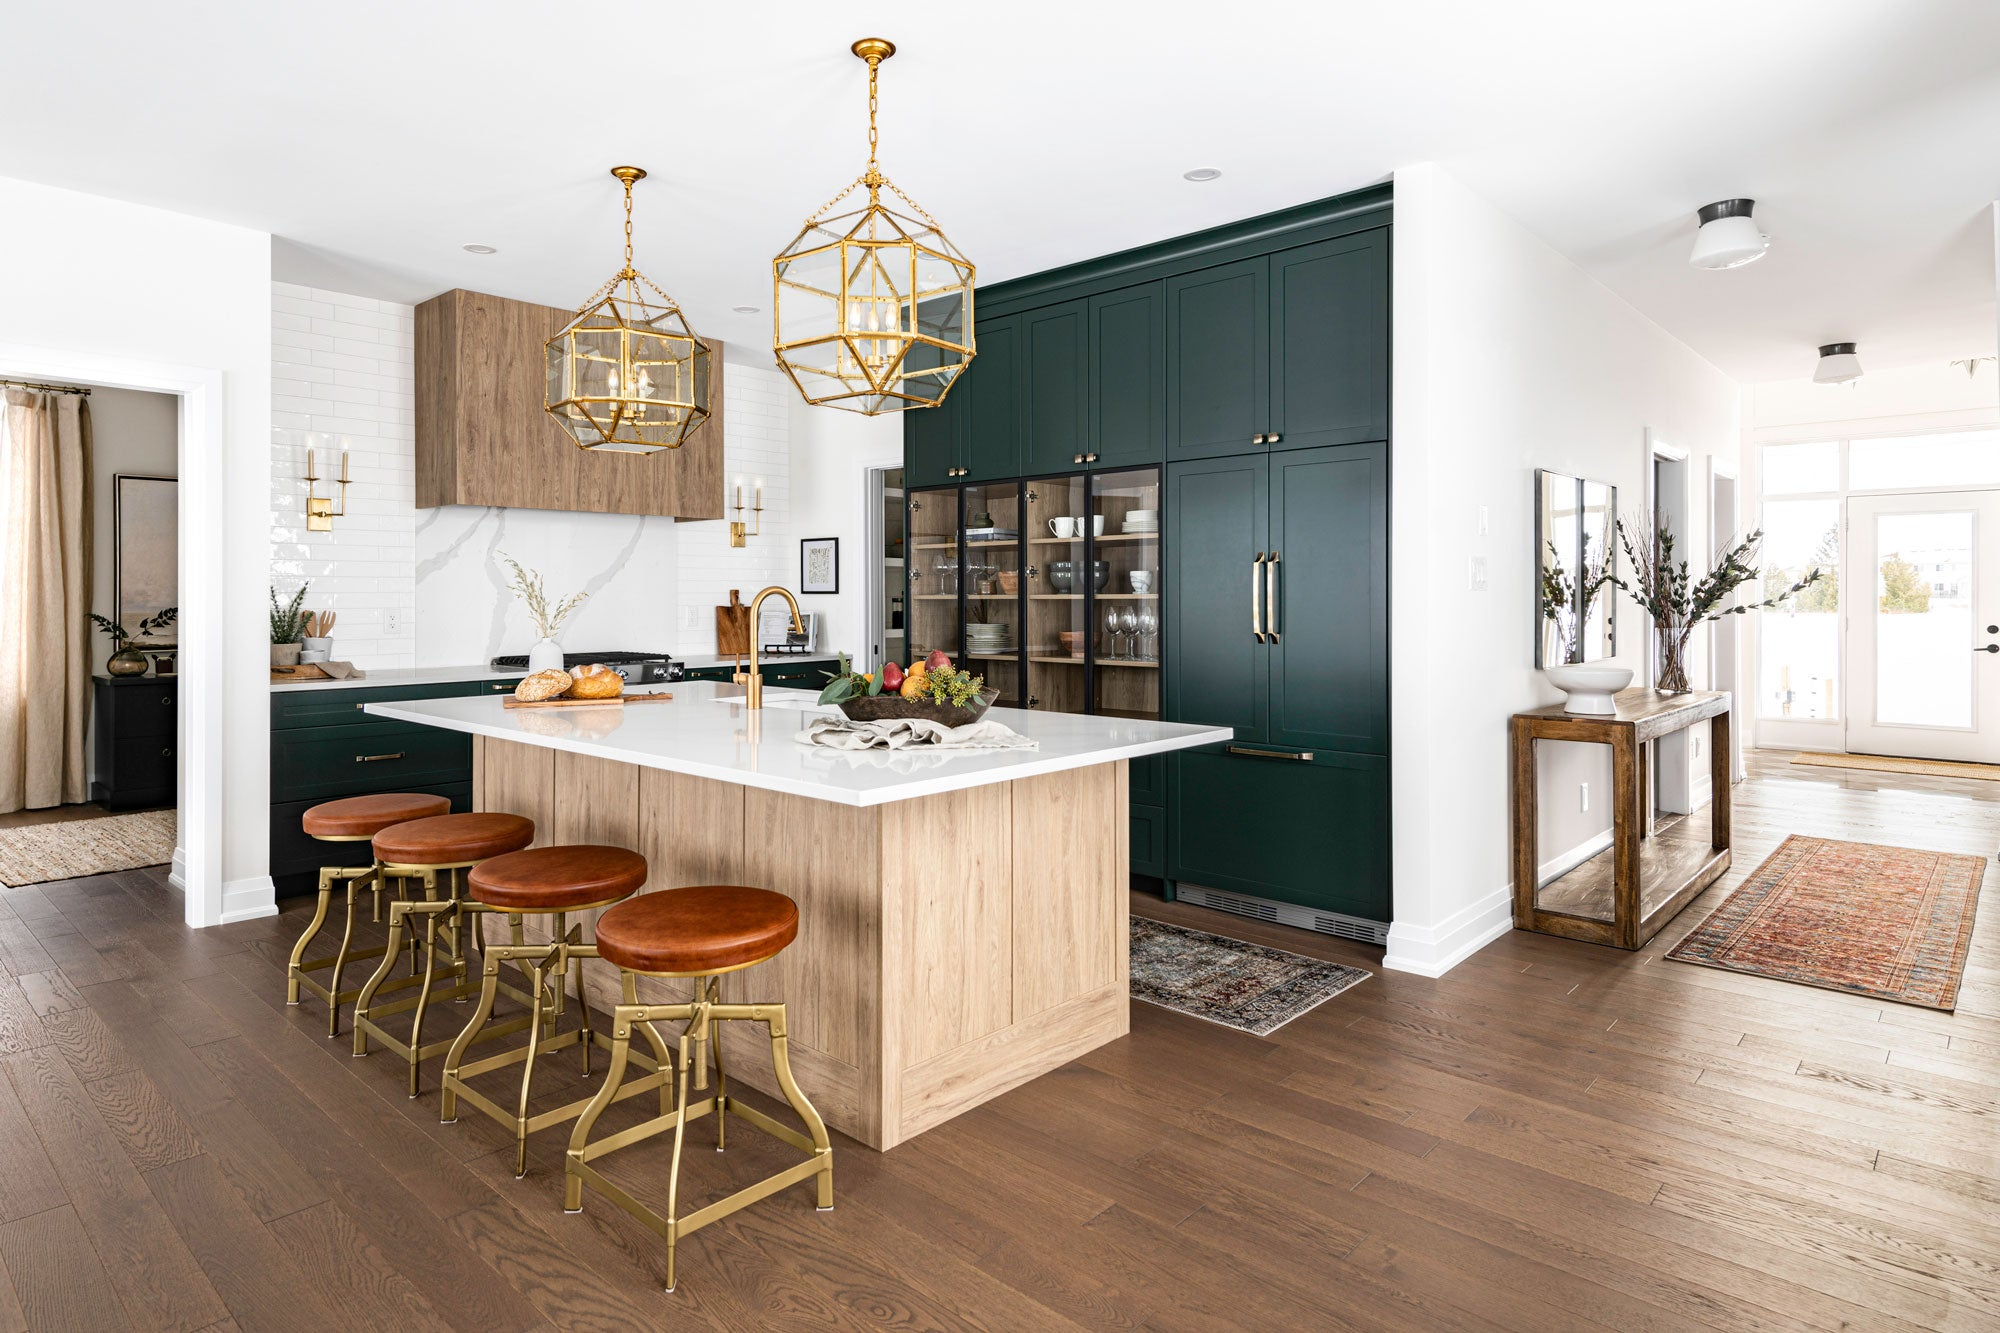 Two toned green and wood kitchen with gold accents